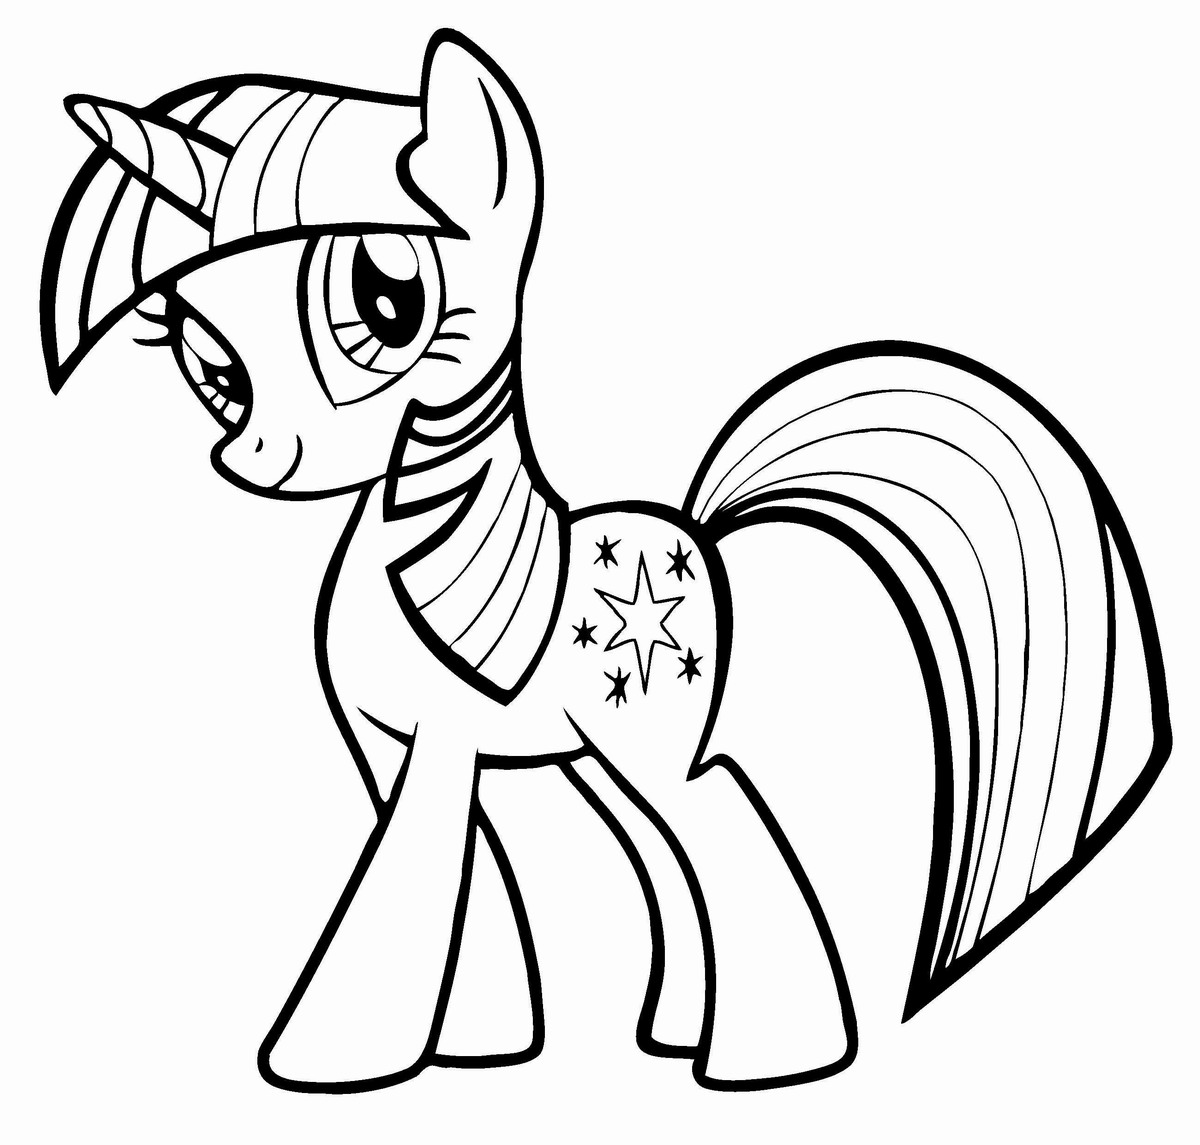 my little pony to color my little pony coloring page coloring home to color pony little my